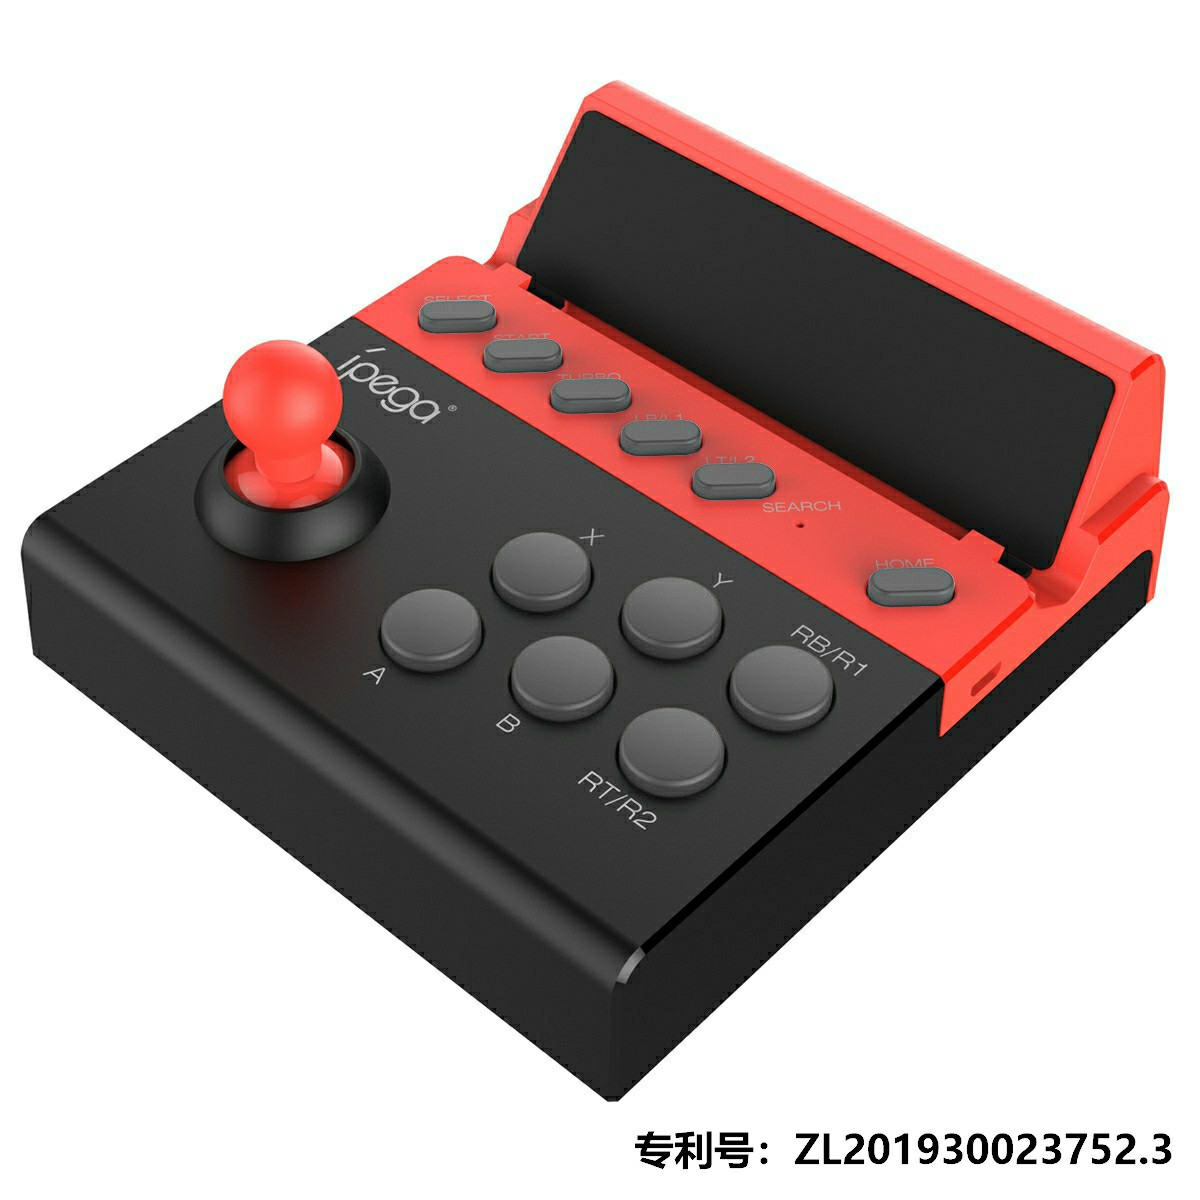 Ipega 9135 mobile phone mini Arcade Machine for Fighting Games